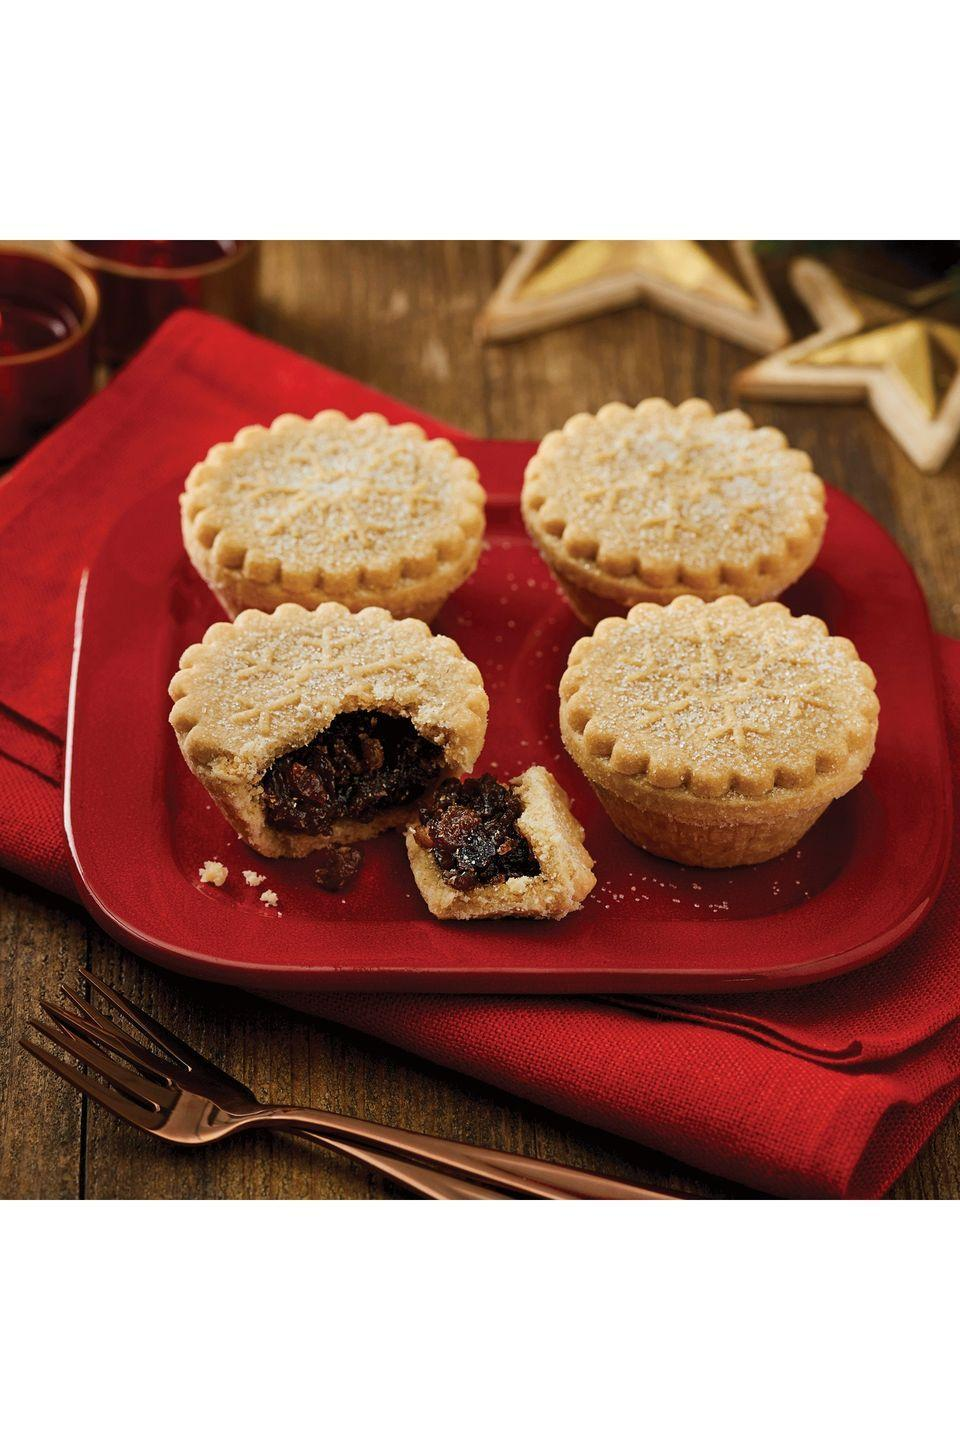 "<p><strong>Overall score: 59/100</strong></p><p>These gluten-free mince pies give a sweet and zesty aroma from the lemon and orange peel within the fruity mincemeat. The traditional snowflake design offers a good ratio of pastry to filling, but the gritty pastry has an artificially sweet flavour. </p><p><strong><a class=""link rapid-noclick-resp"" href=""https://go.redirectingat.com?id=127X1599956&url=https%3A%2F%2Fgroceries.morrisons.com%2Fproducts%2Fmorrisons-free-from-mince-pies-4pk-385245011%3FsortBy%3DmostRecent&sref=https%3A%2F%2Fwww.goodhousekeeping.com%2Fuk%2Ffood%2Ffood-reviews%2Fg23783723%2Fbuy-the-best-gluten-free-mince-pies-this-christmas%2F"" rel=""nofollow noopener"" target=""_blank"" data-ylk=""slk:BUY NOW"">BUY NOW</a> Morrisons, £2 for 4 (serves 4)</strong></p>"